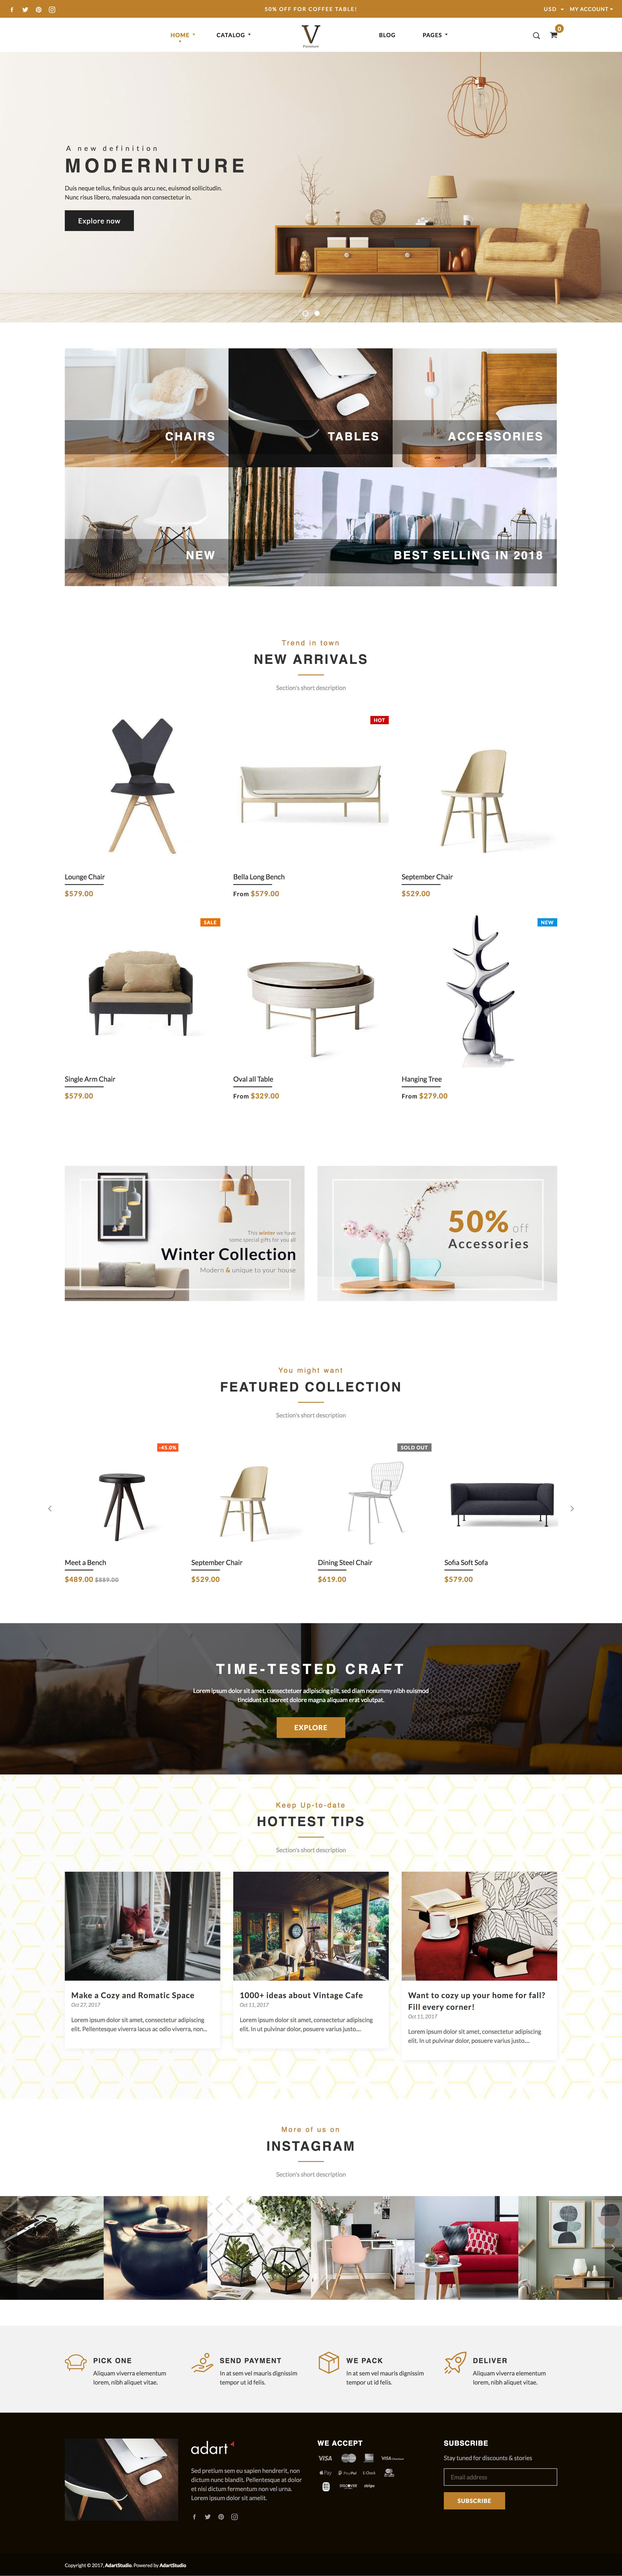 Best Ecommerce Website Template For Furniture Store Virgo Shopify